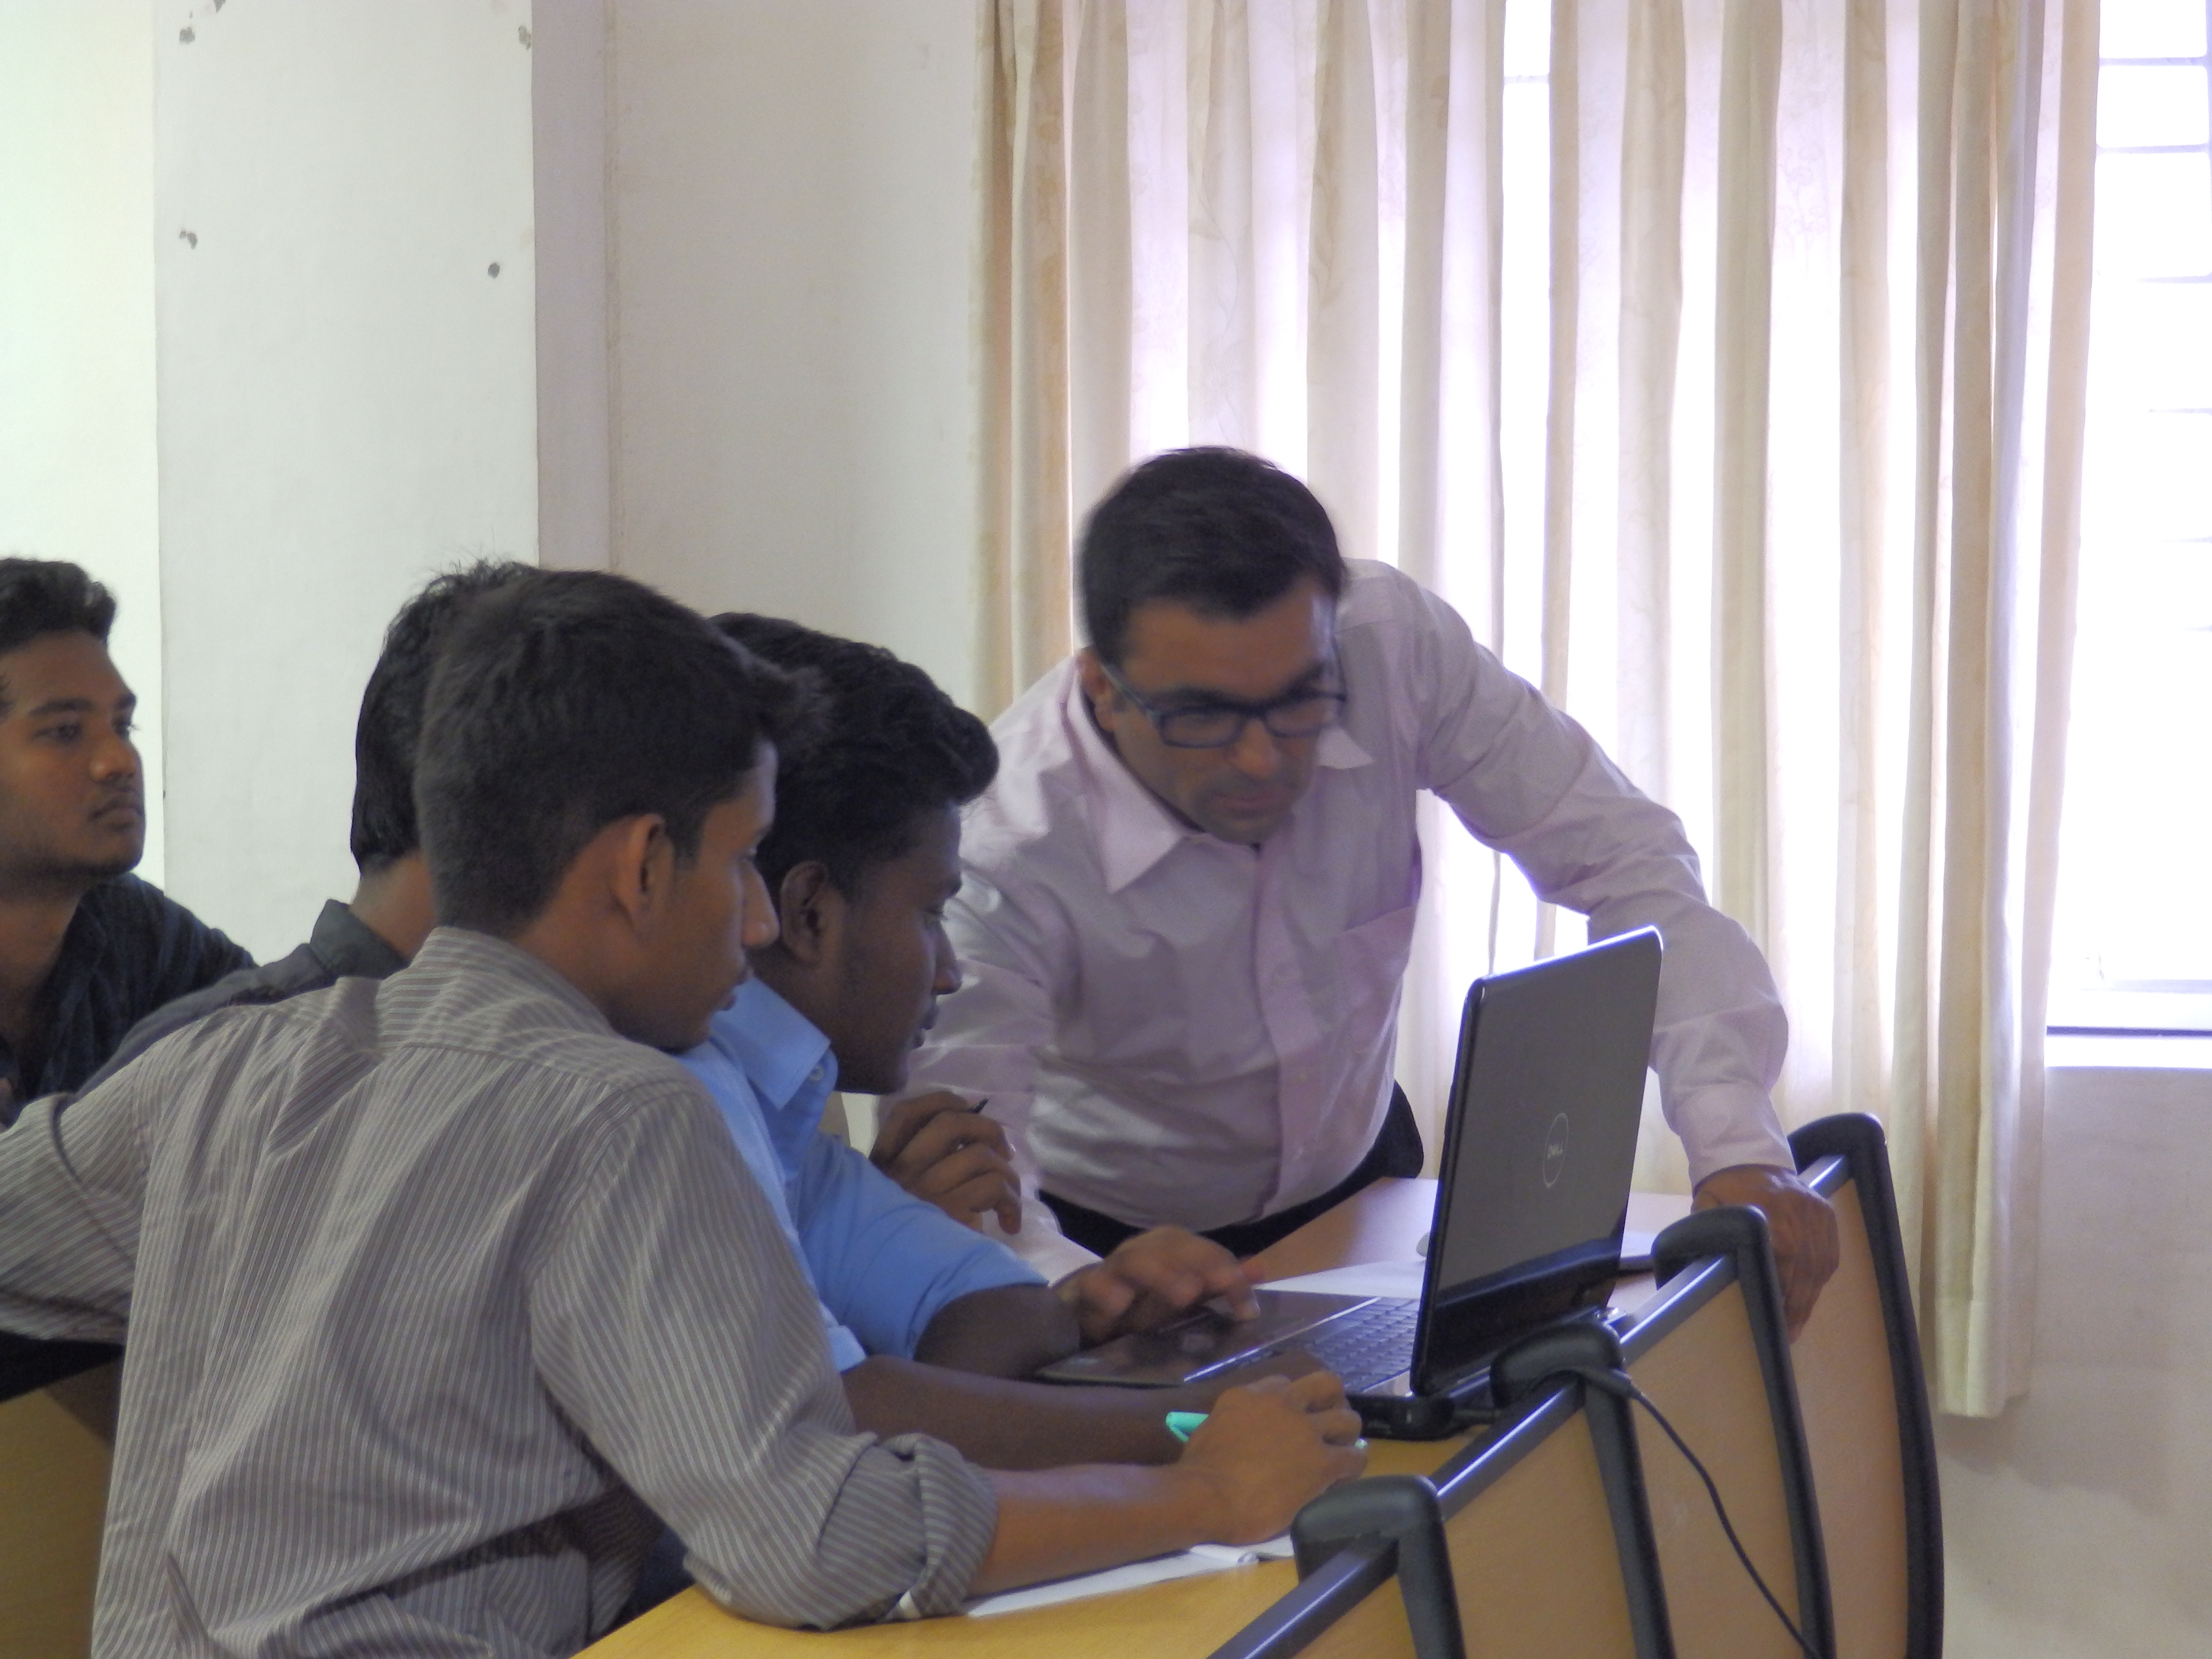 Workshop on Process Design and Engineering